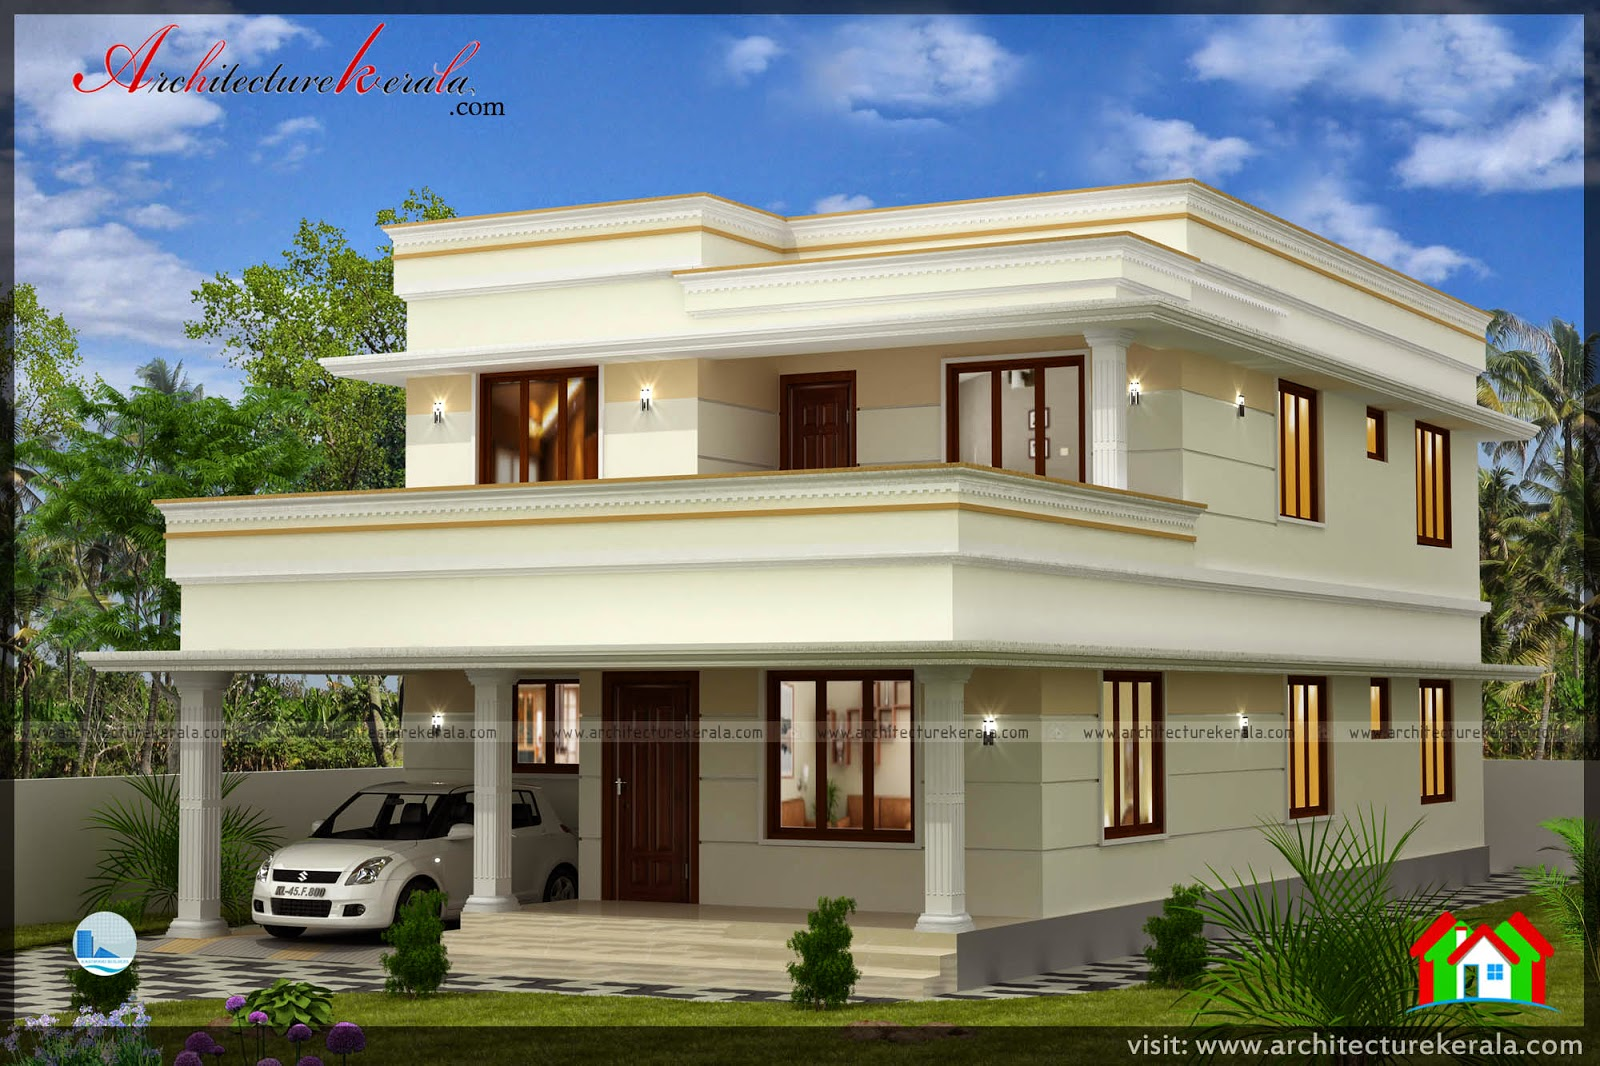 House plan 4 bedrooms architecture kerala for Kerala house plans 4 bedroom